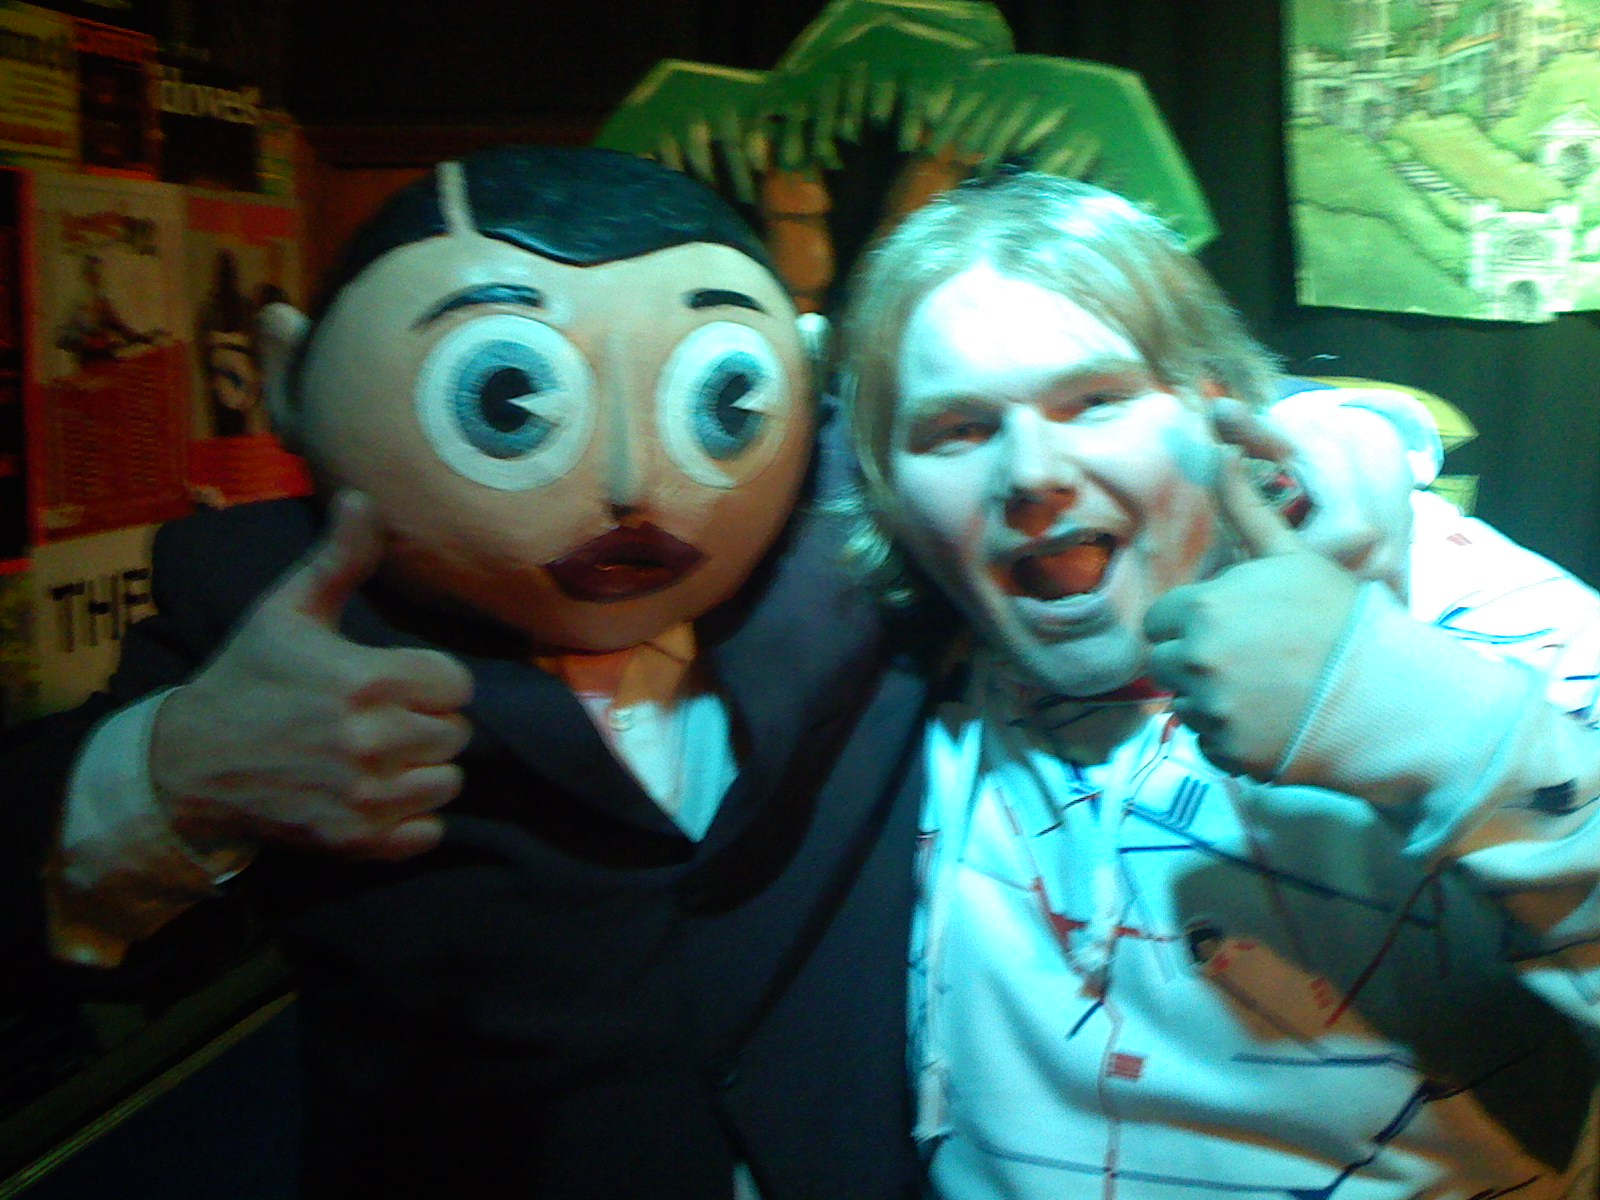 me and Frank